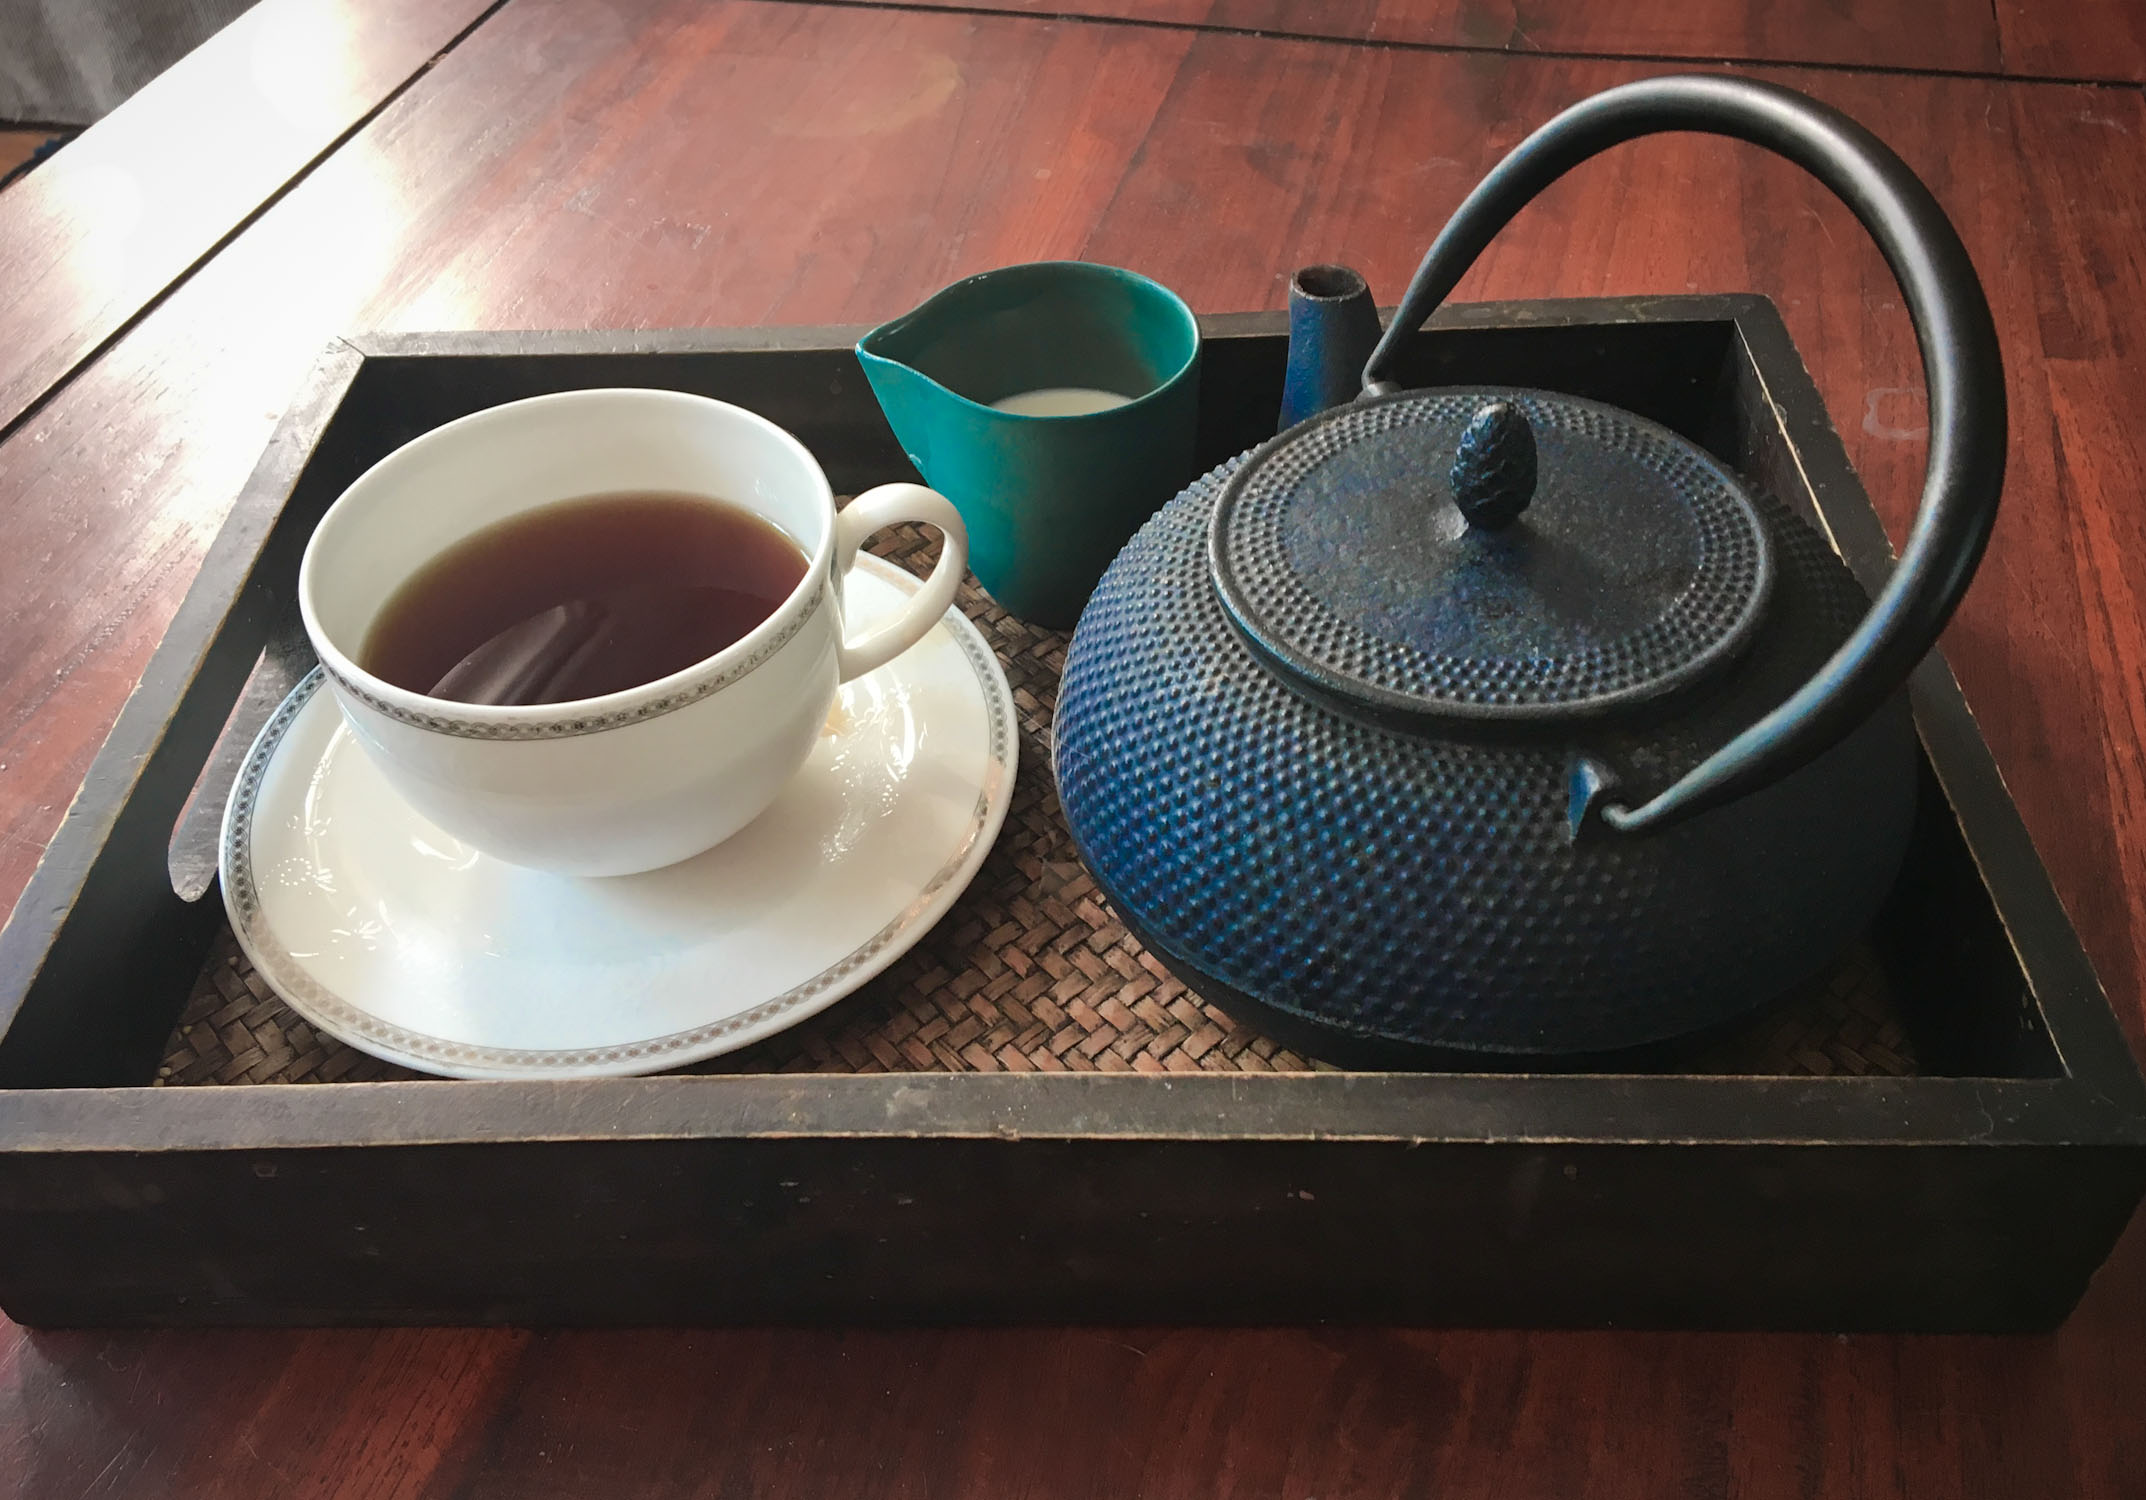 Give up the grocery shopping, and have a cup of tea.